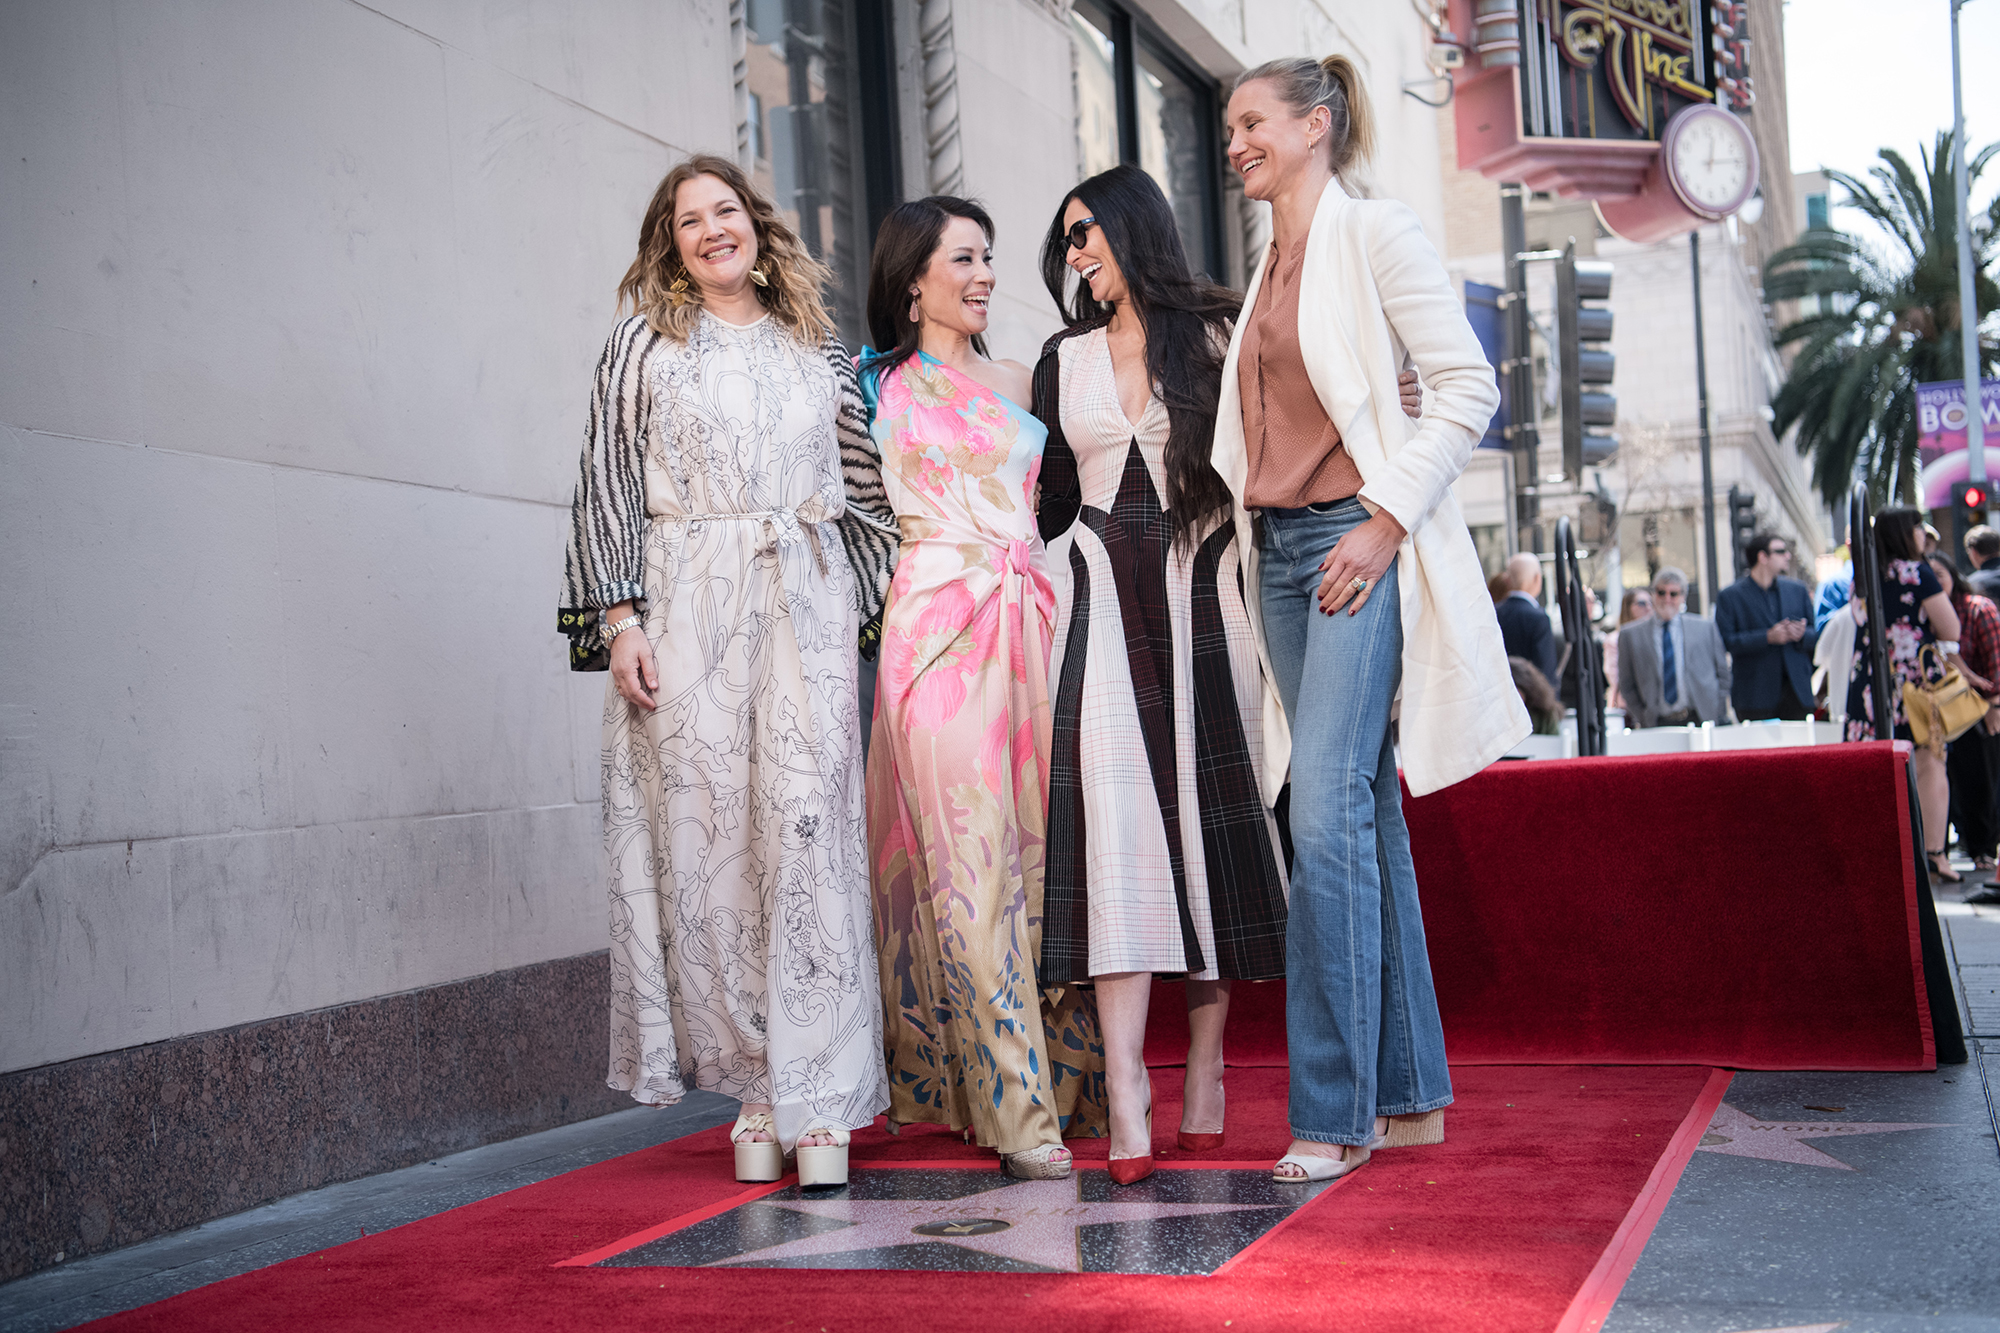 """Charlie's Angels Cameron Diaz Drew Barrymore Demi Moore Lucy Liu Walk of Fame - Diaz and Barrymore have remained close friends since filming Charlie's Angels . """"She has made me feel beyond beautiful . Always has. Always will,"""" the Santa Clarita Diet star wrote via Instagram in July 2017."""